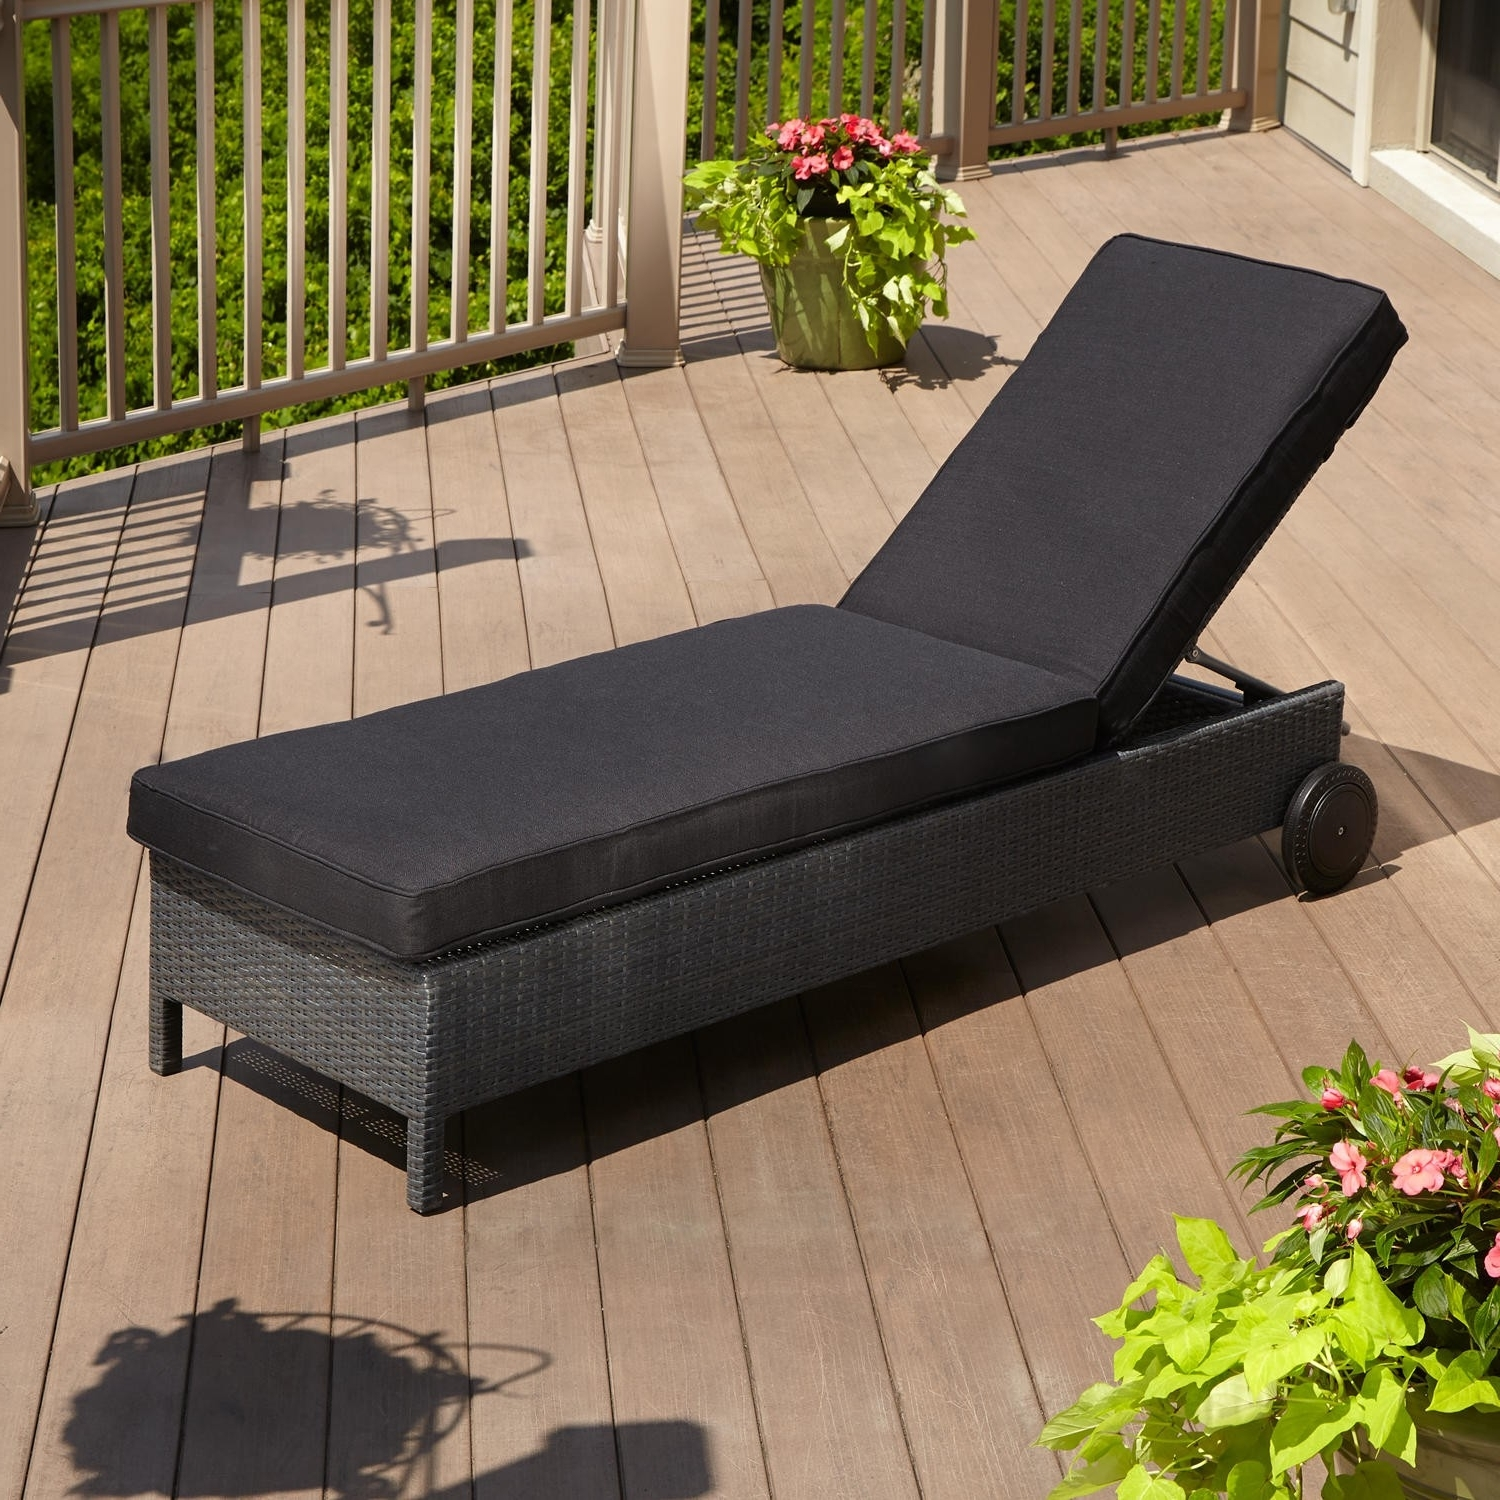 Chaise Lounges For Outdoor Patio Within Most Up To Date Patio Chaise Lounge As The Must Have Furniture In Your Pool Deck (View 8 of 15)